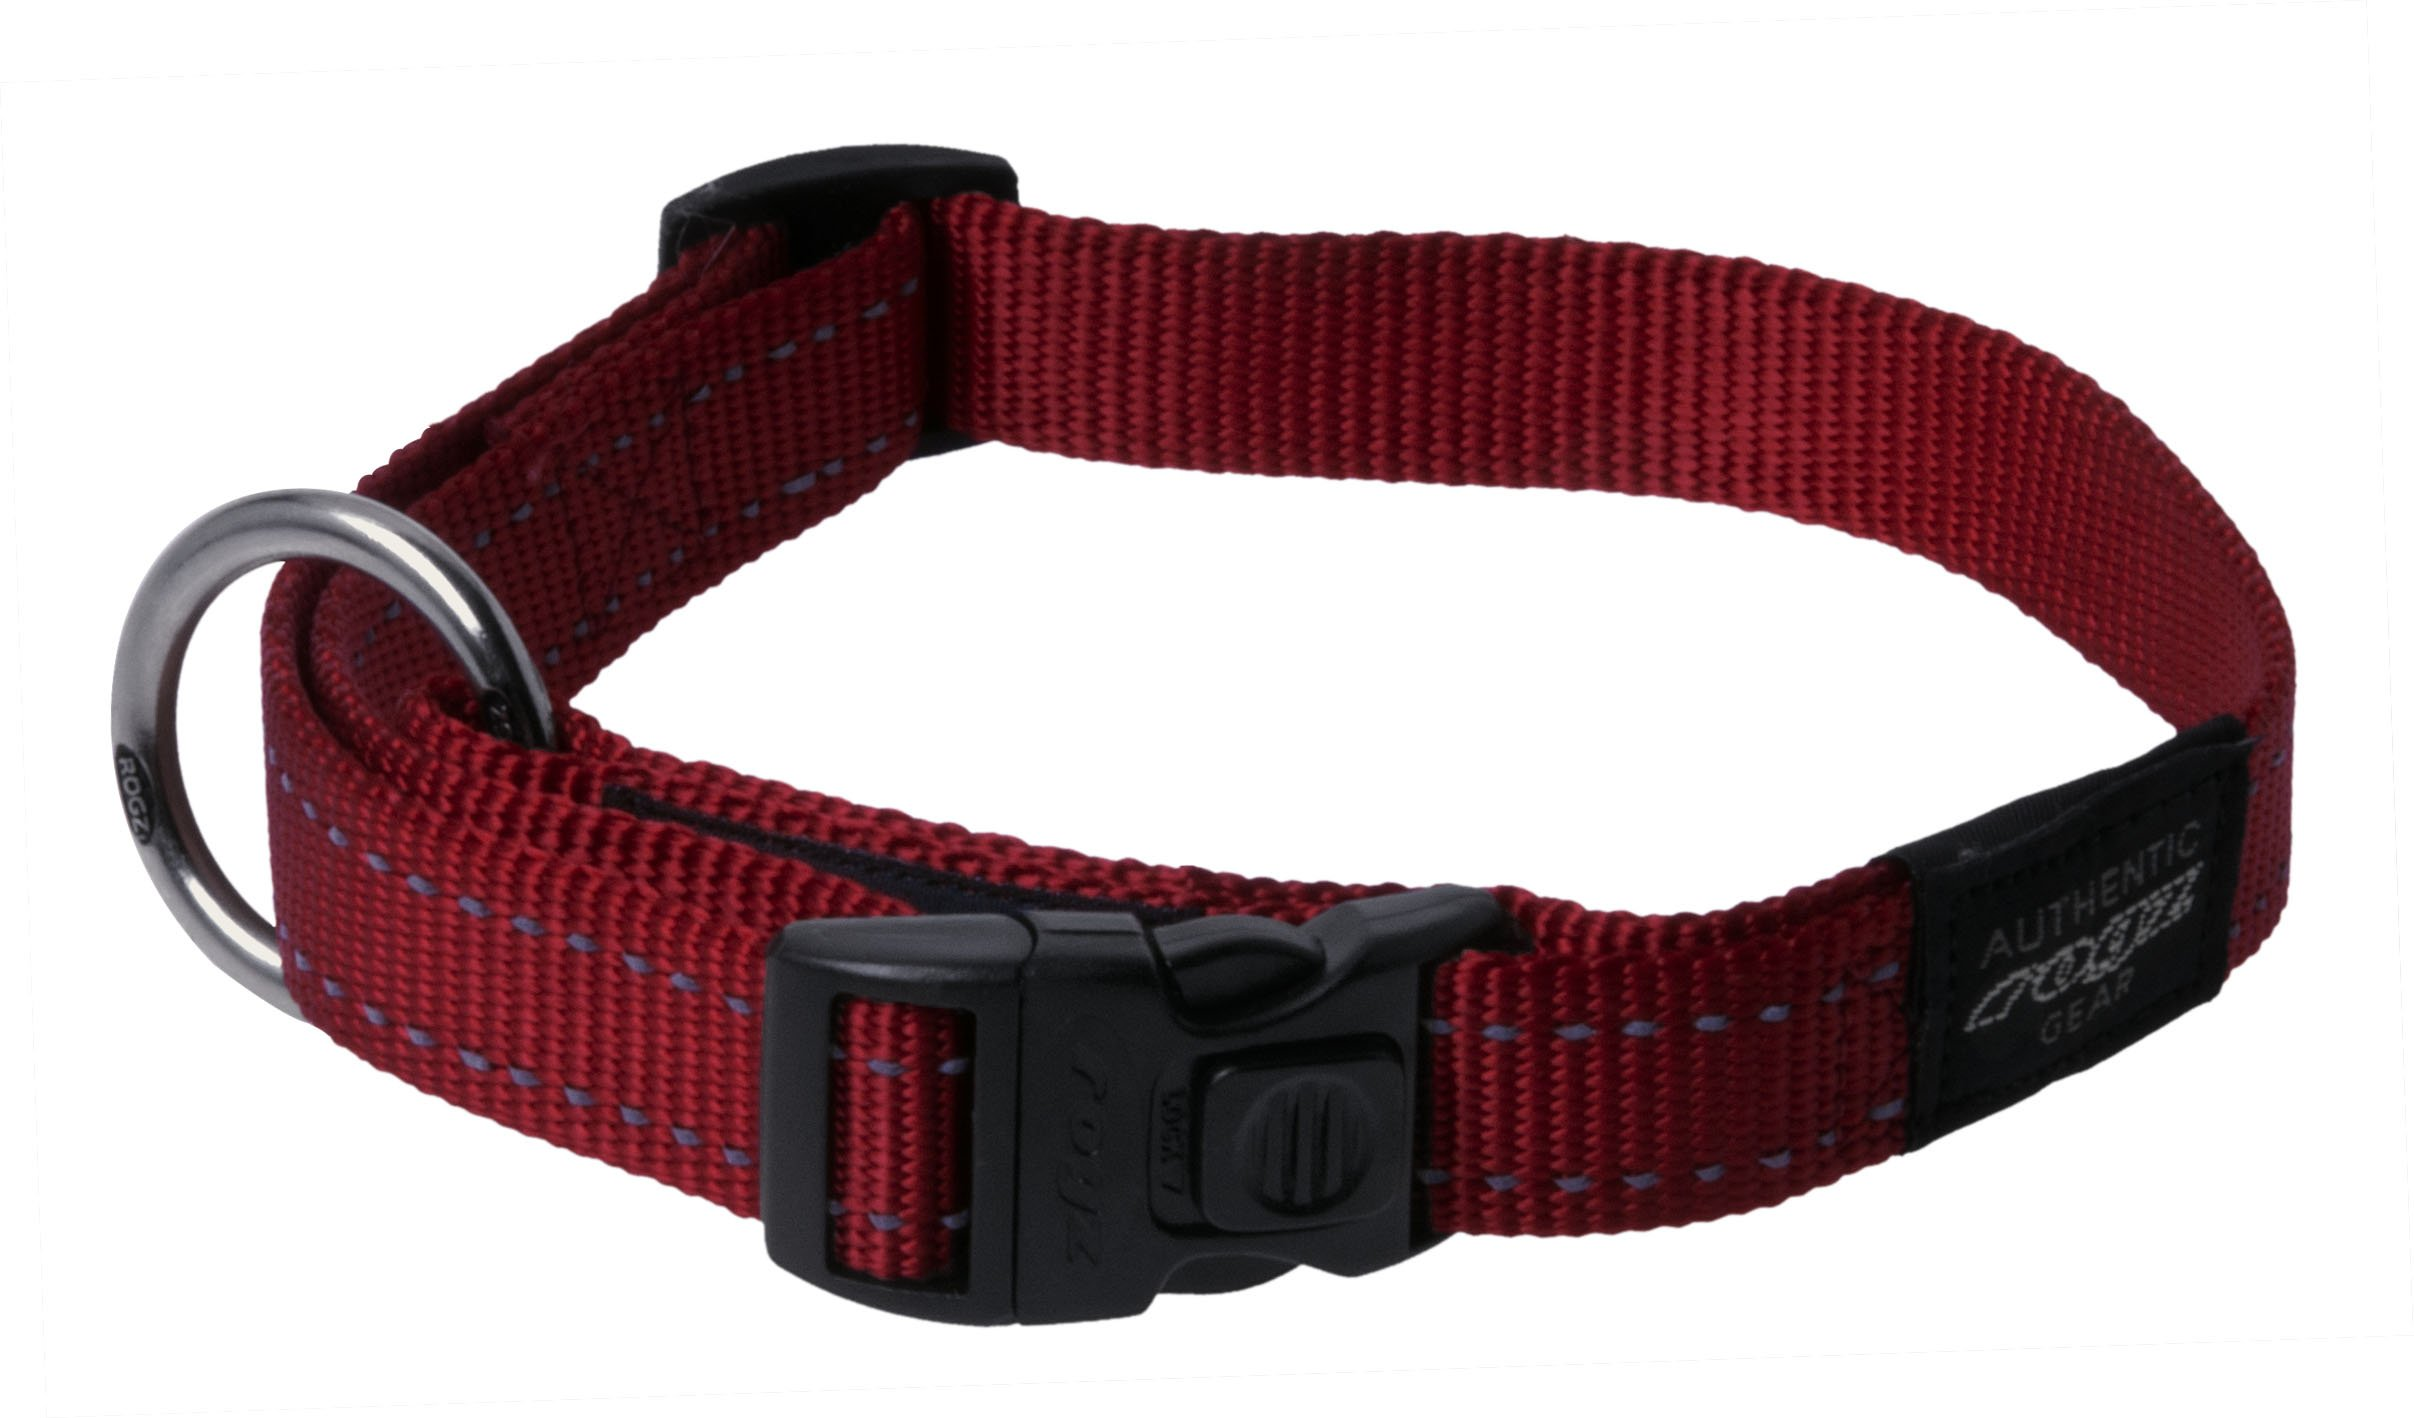 Reflective Dog Collar for Extra Large Dogs, Adjustable from 17-27 inches, Red